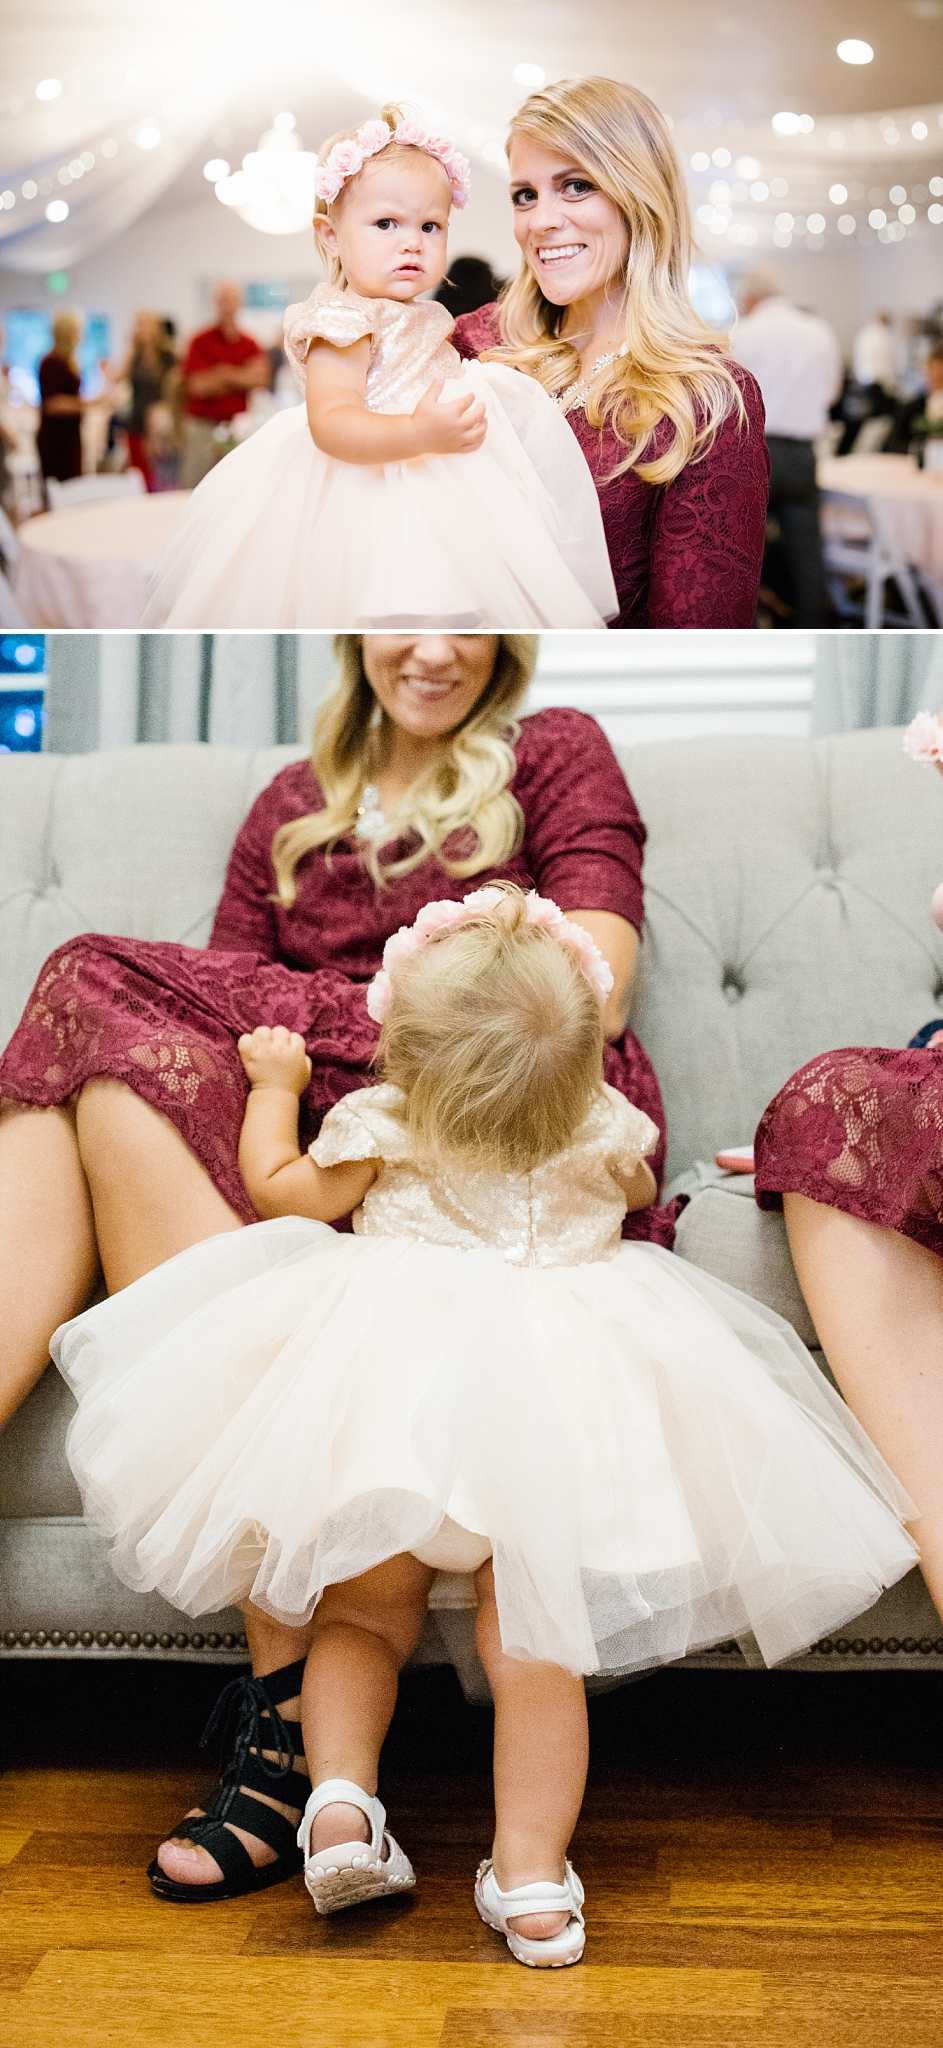 HannahChaseWedding-437_Lizzie-B-Imagery-Utah-Wedding-Photographer-Bridal-Photography-Payson-Utah-Temple-Clarion-Gardens-Catering-and-Events-Center.jpg